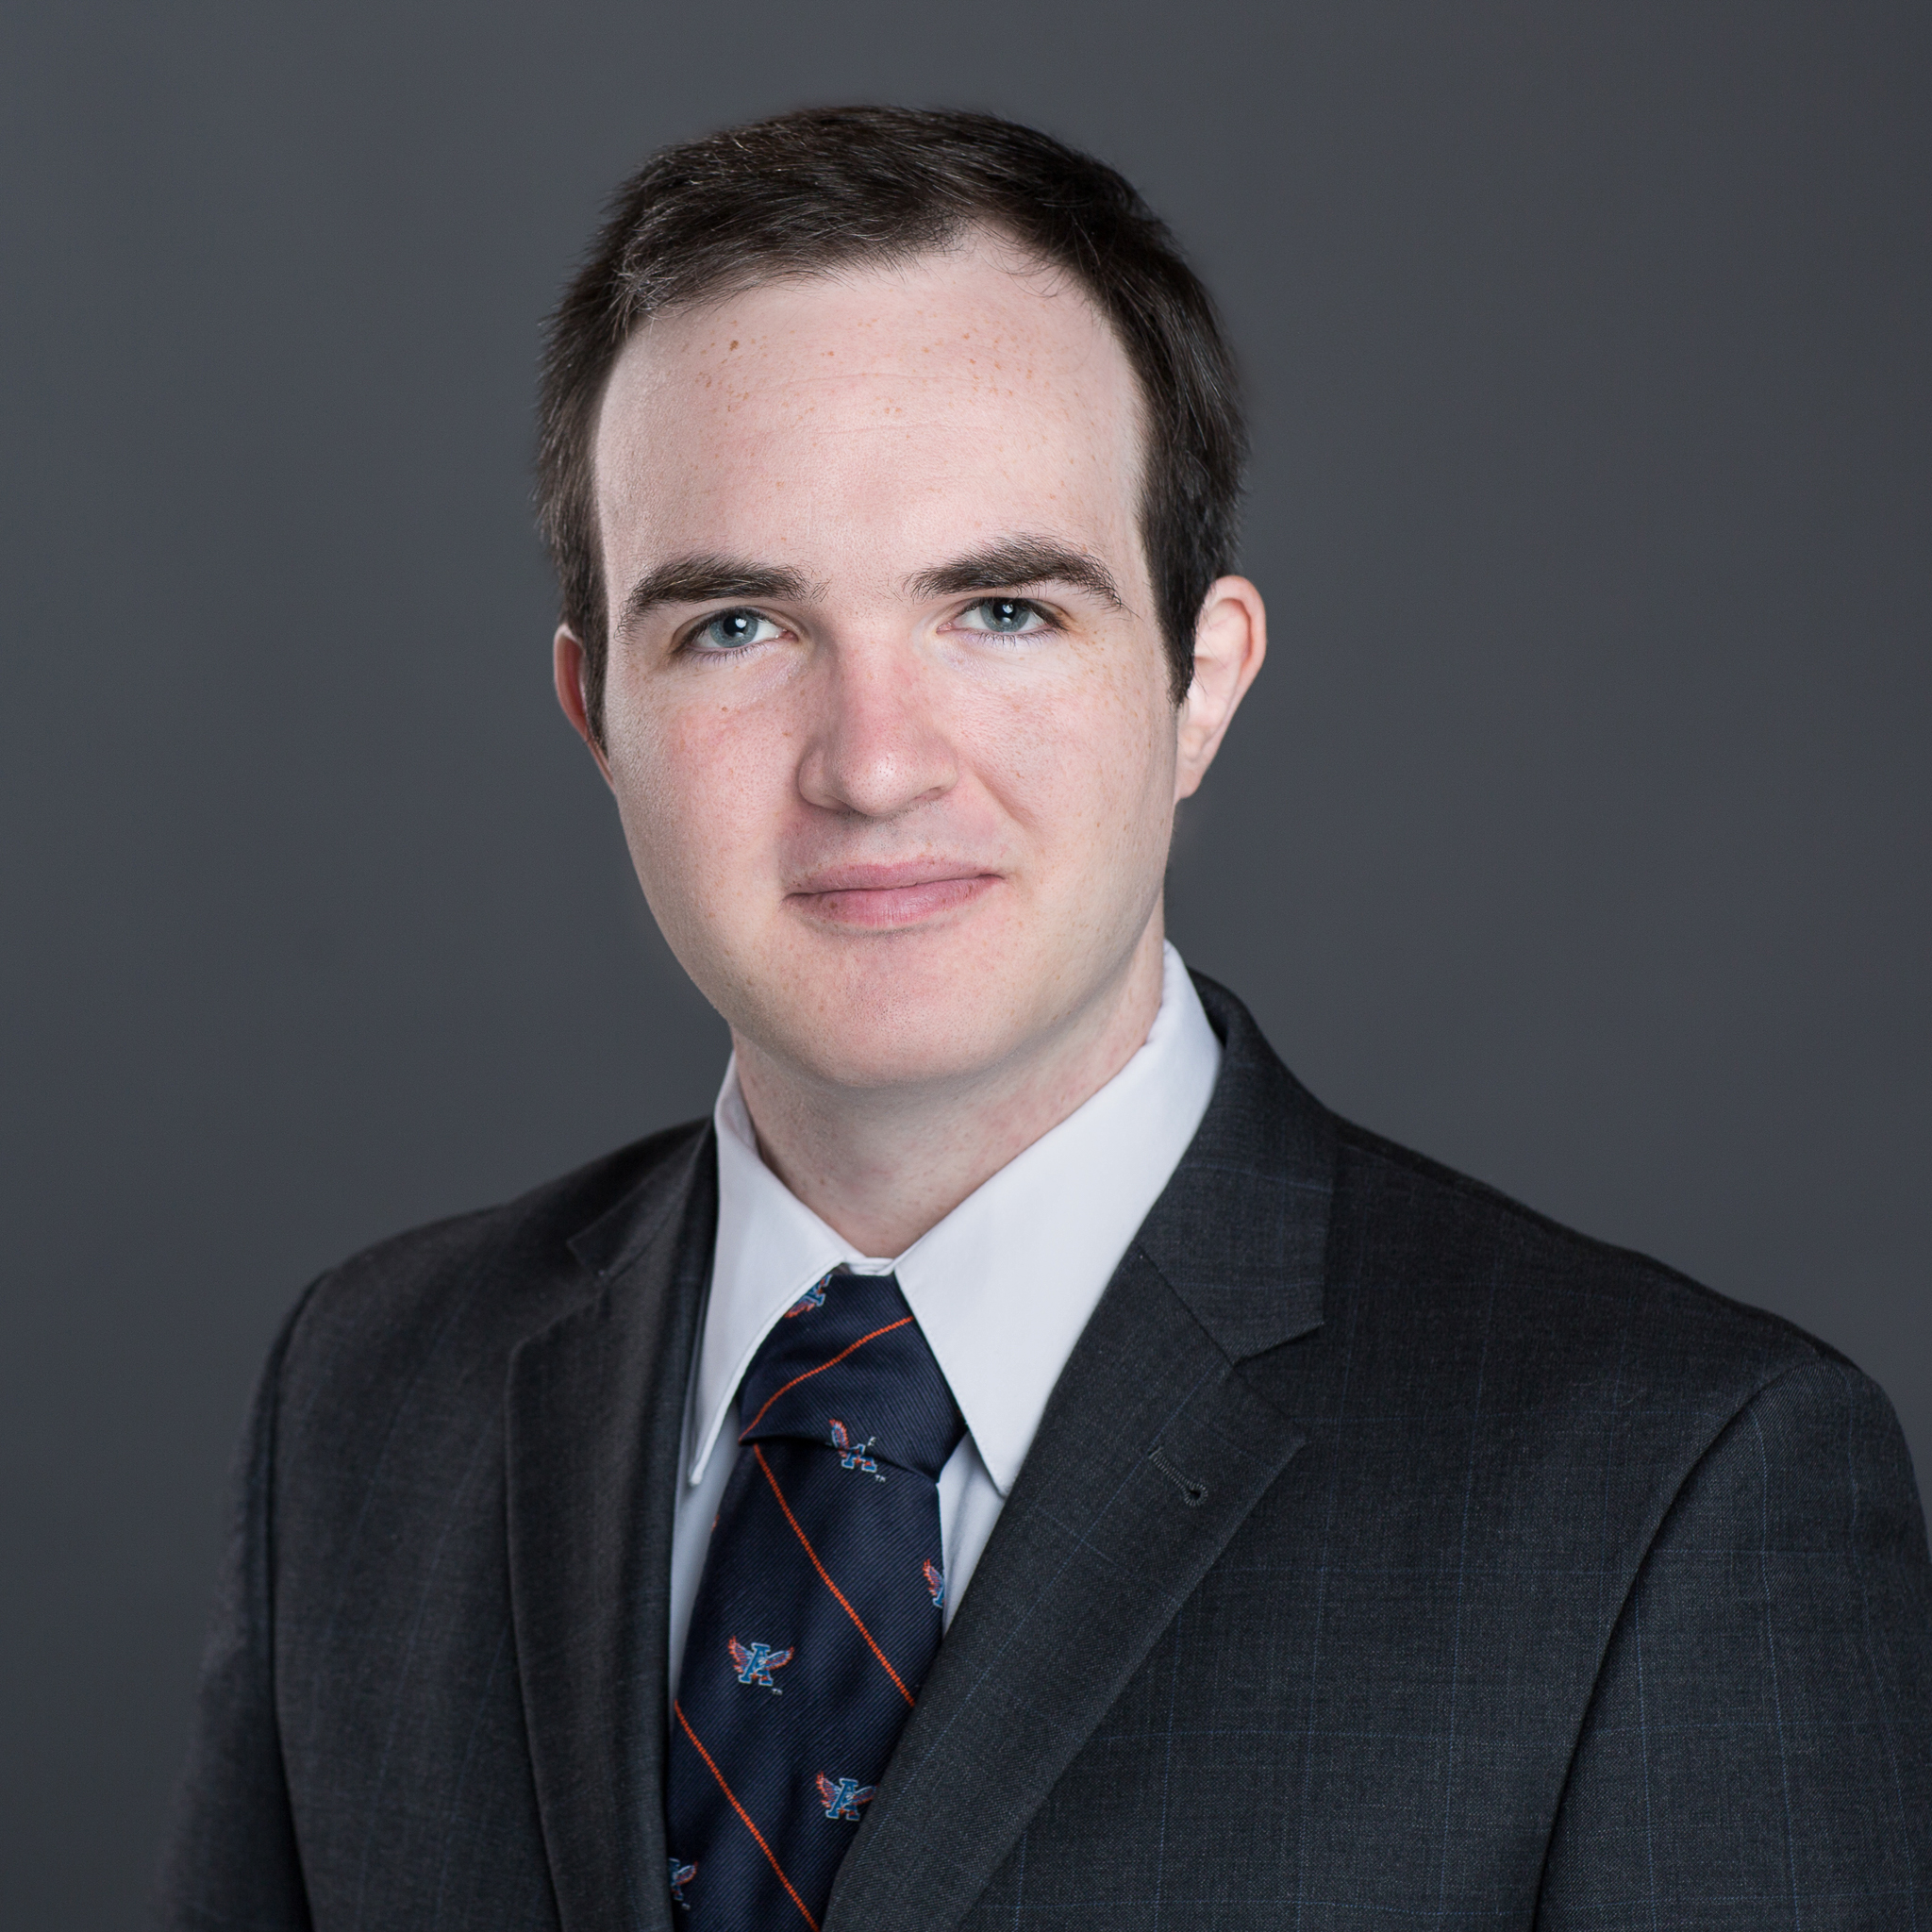 new-hampshire-legal-attorney-headshot.jpg